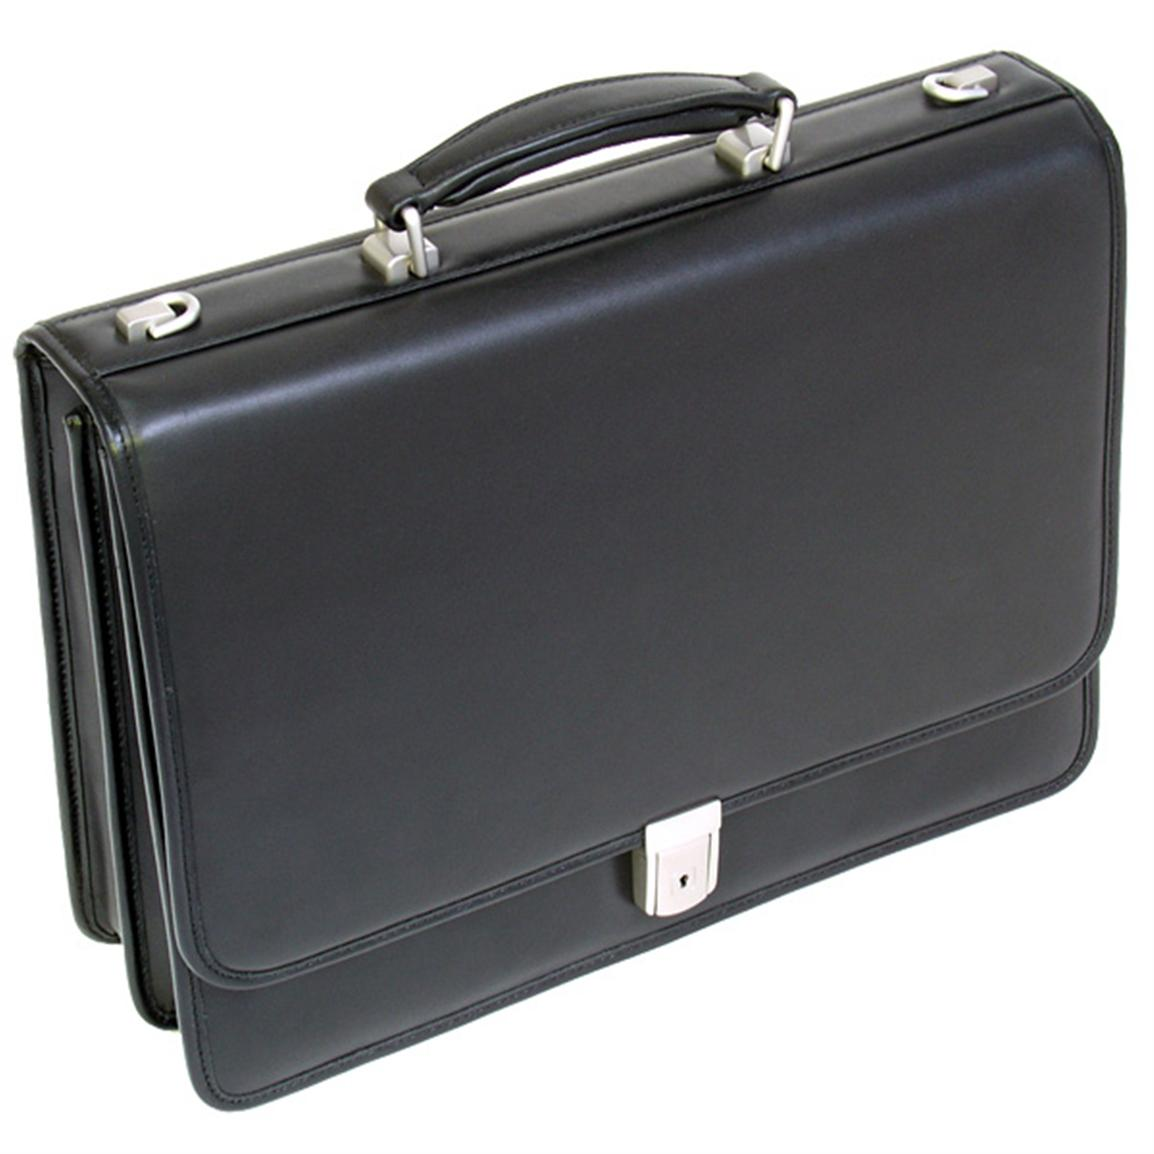 McKlein USA I Series Bucktown Double Compartment Leather Briefcase, Black